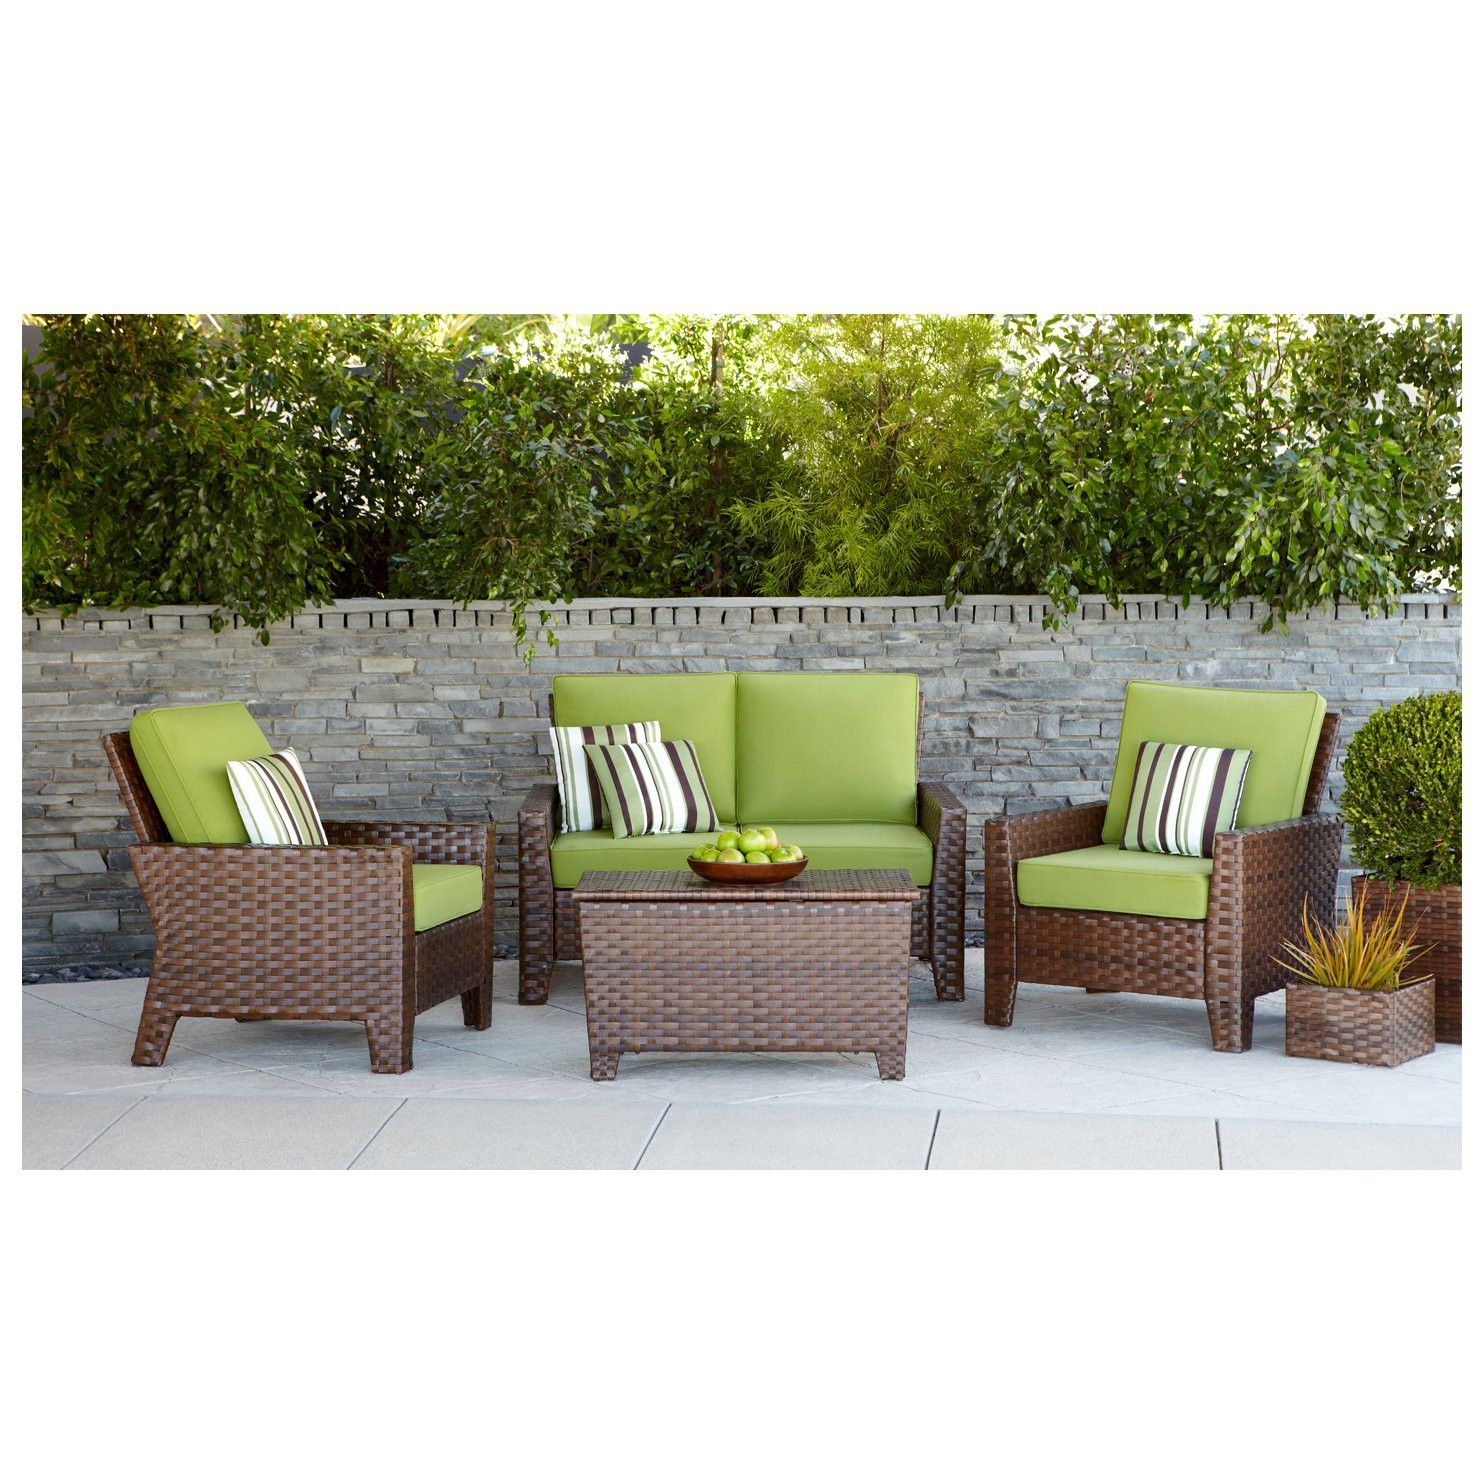 Payless Furniture Store Dining Room Tables: Belmont Brown Wicker Patio Conversation Furnitur